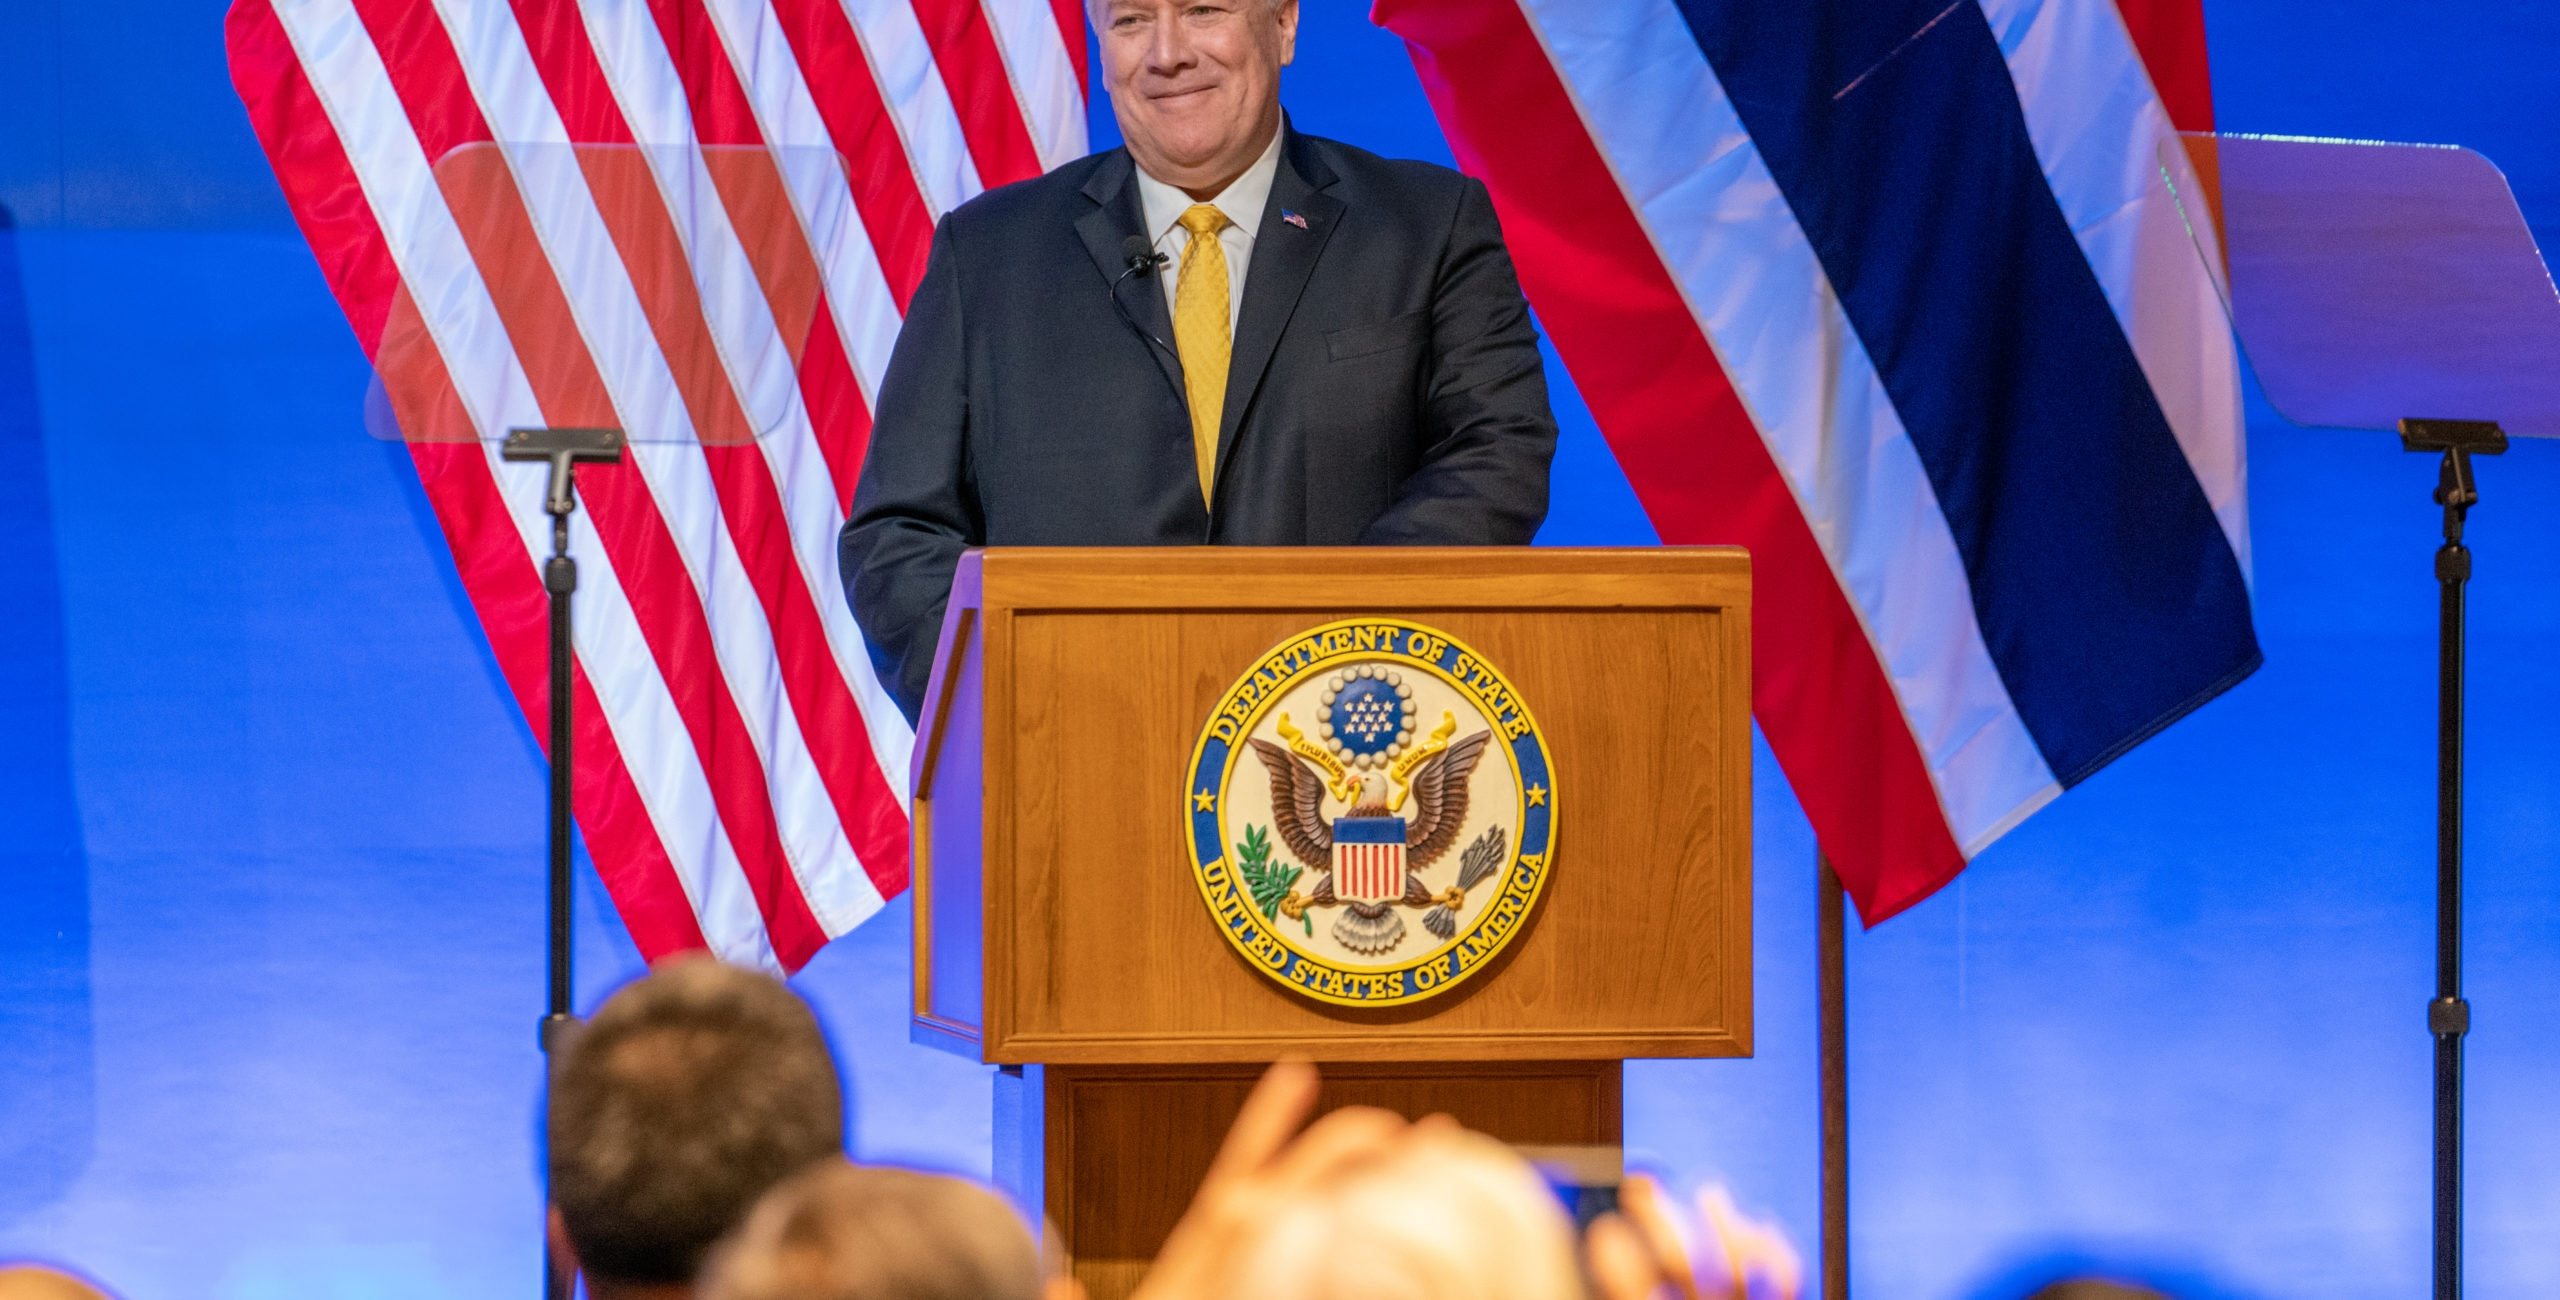 Secretary Pompeo Speaks on U.S. Engagement in Asia